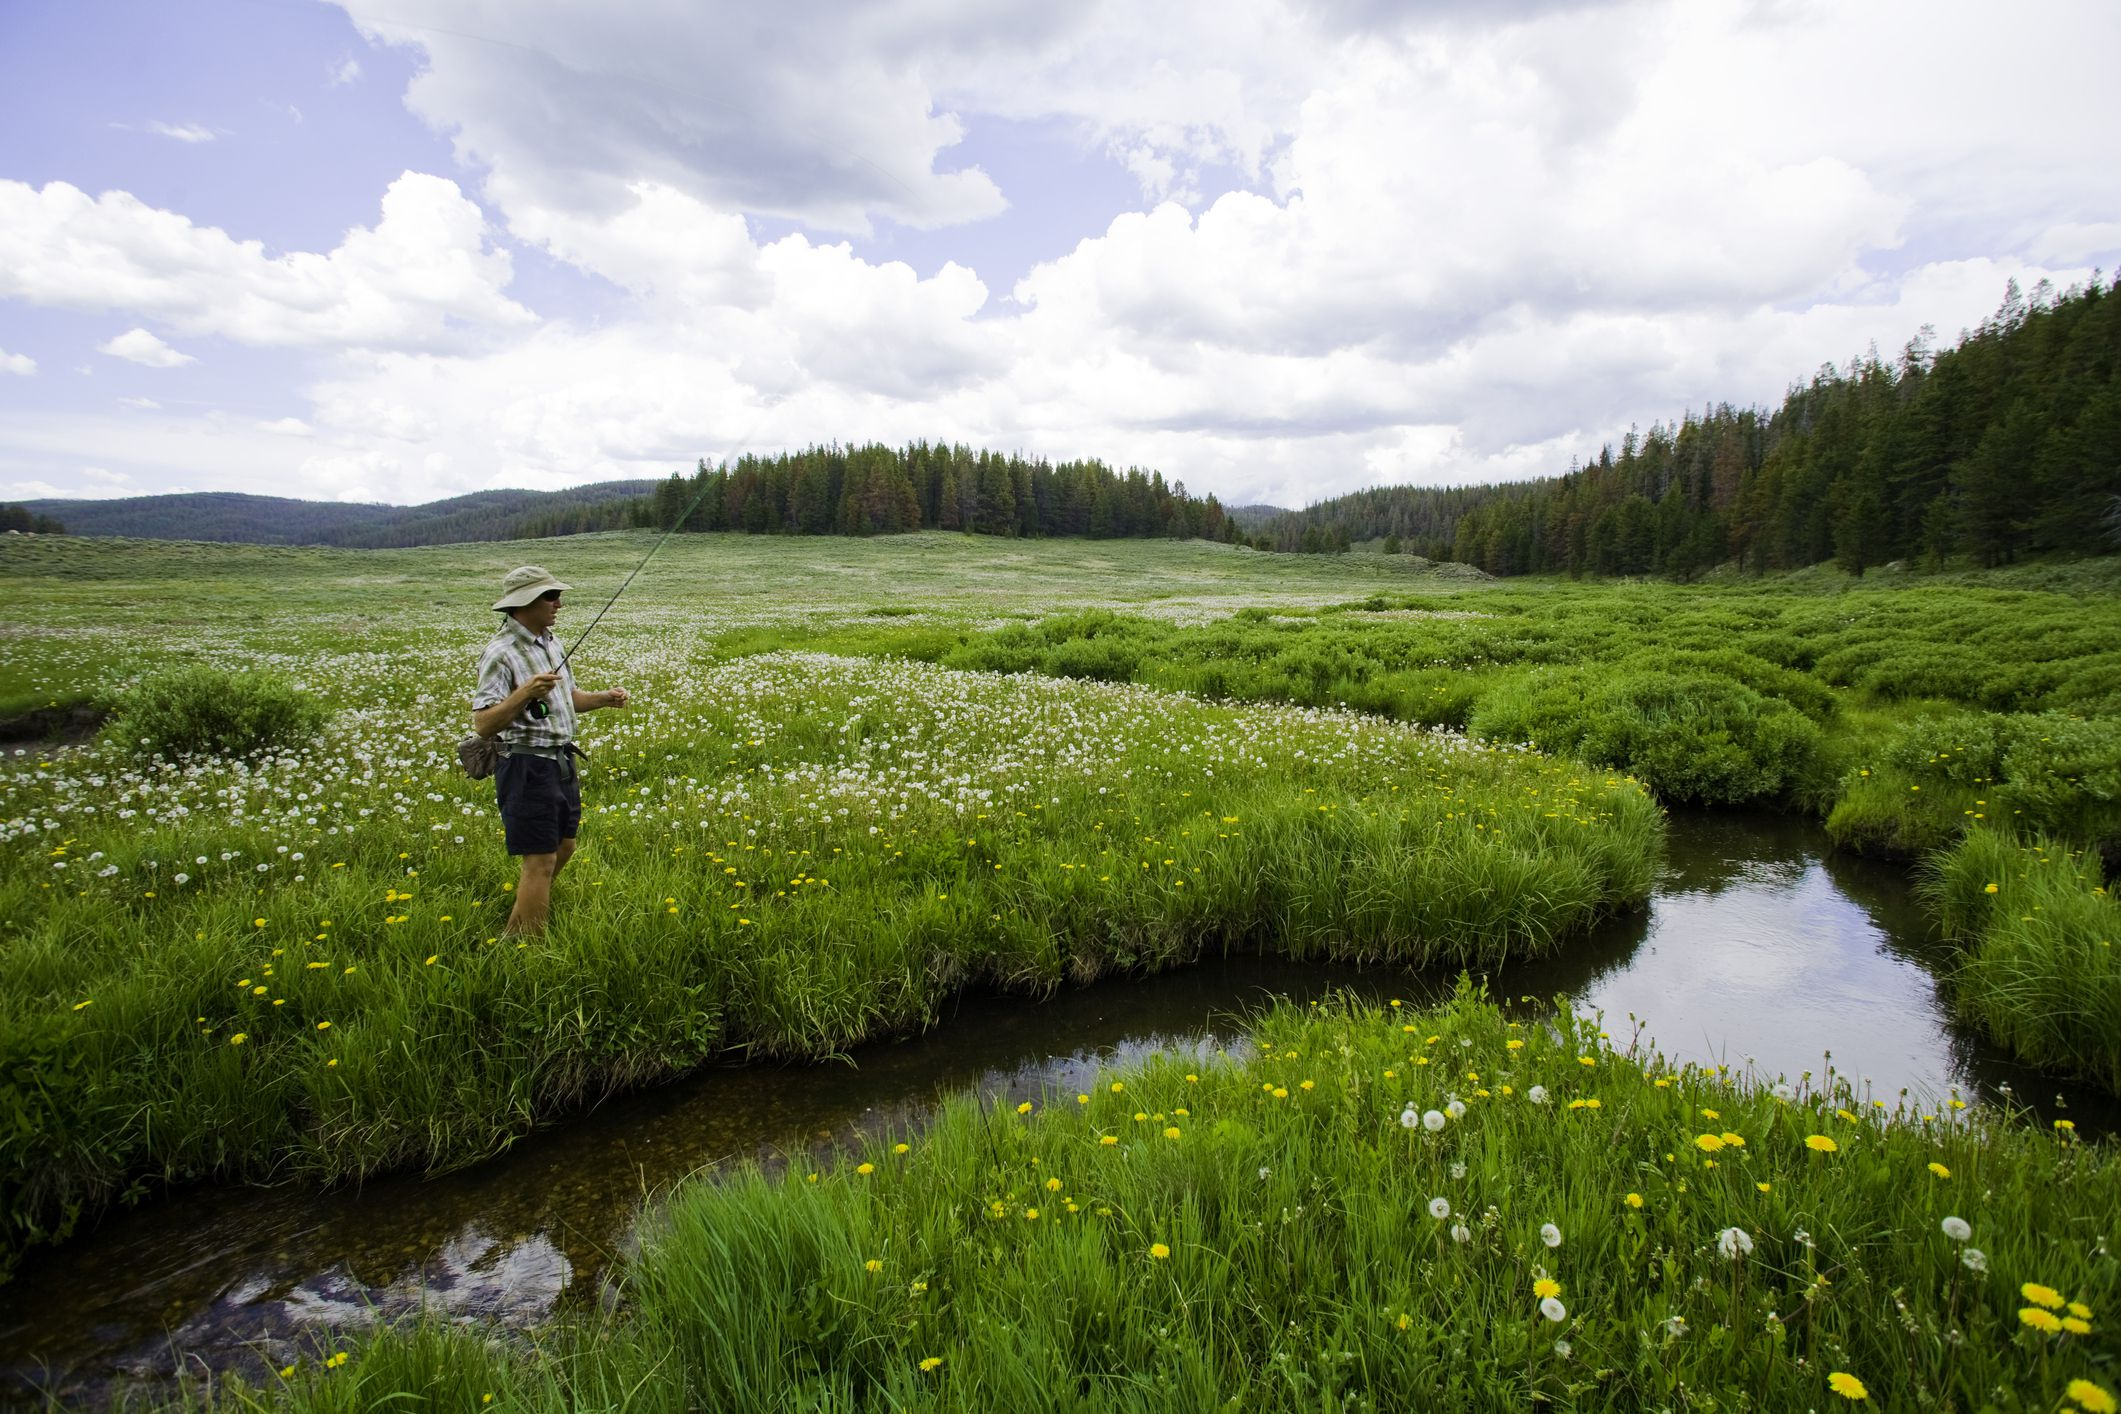 The Top 9 Destinations for Fishing in Colorado